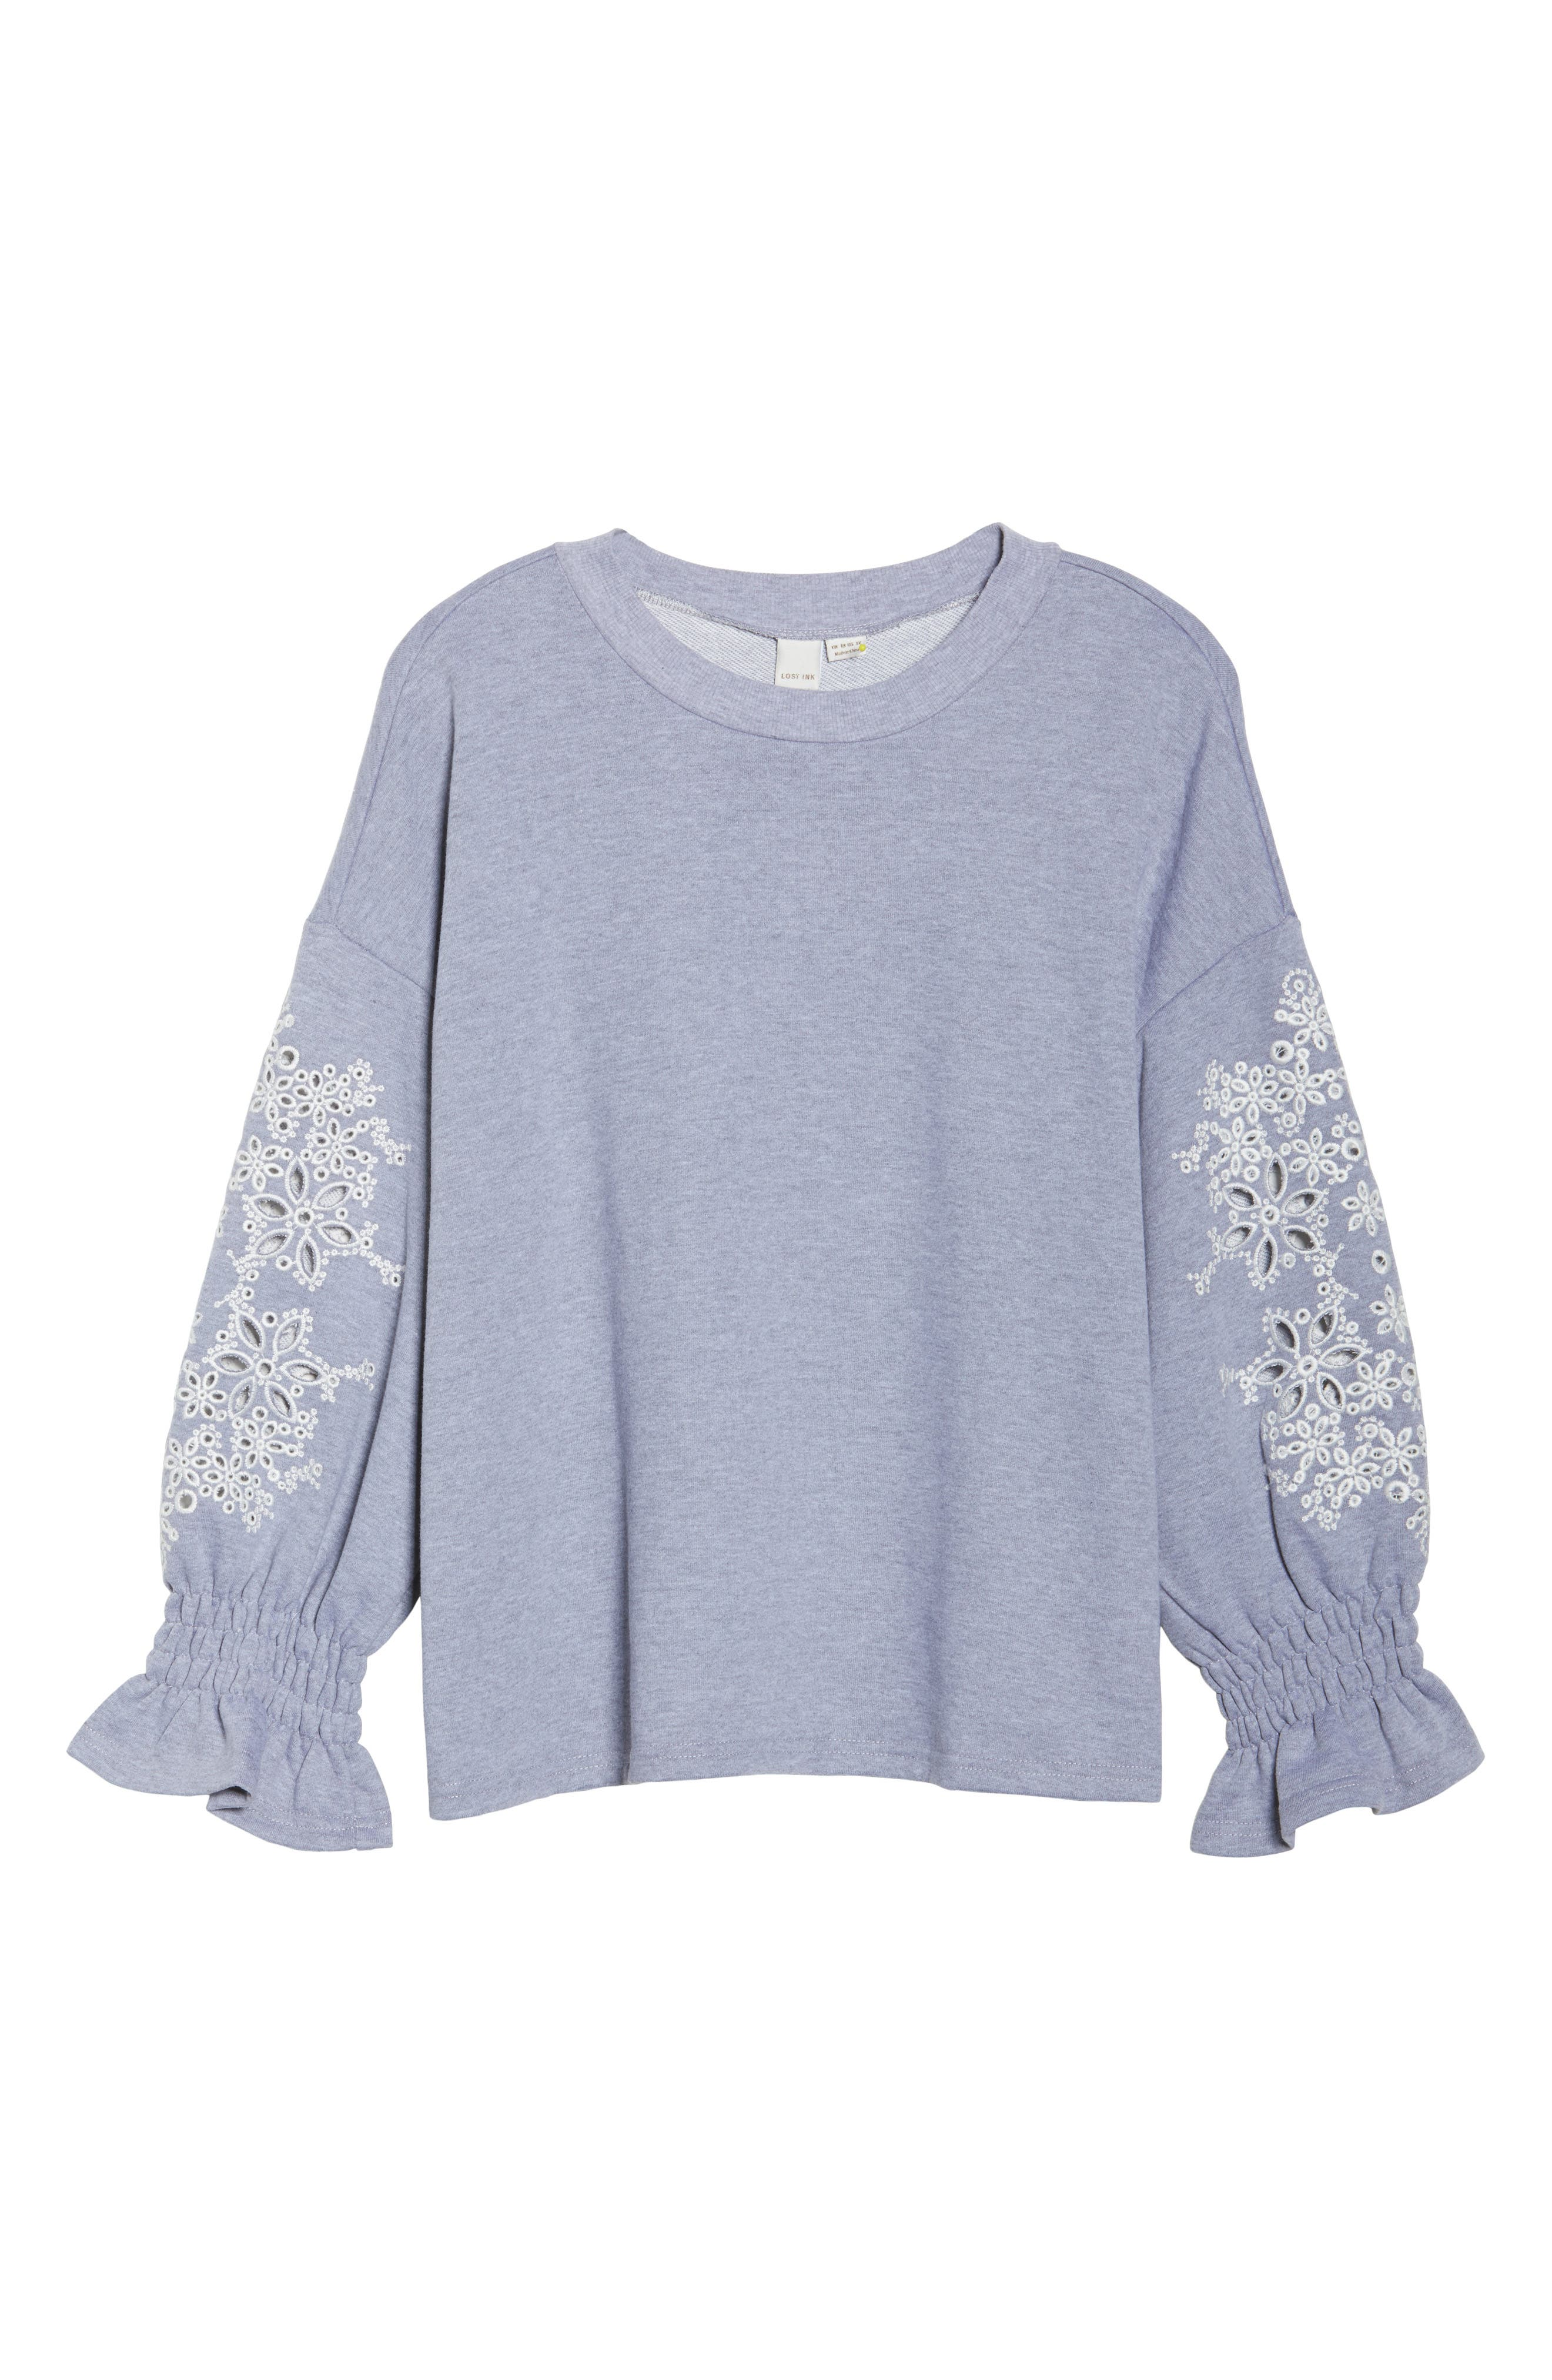 Broderie Anglaise Embellished Sweatshirt,                             Alternate thumbnail 6, color,                             020